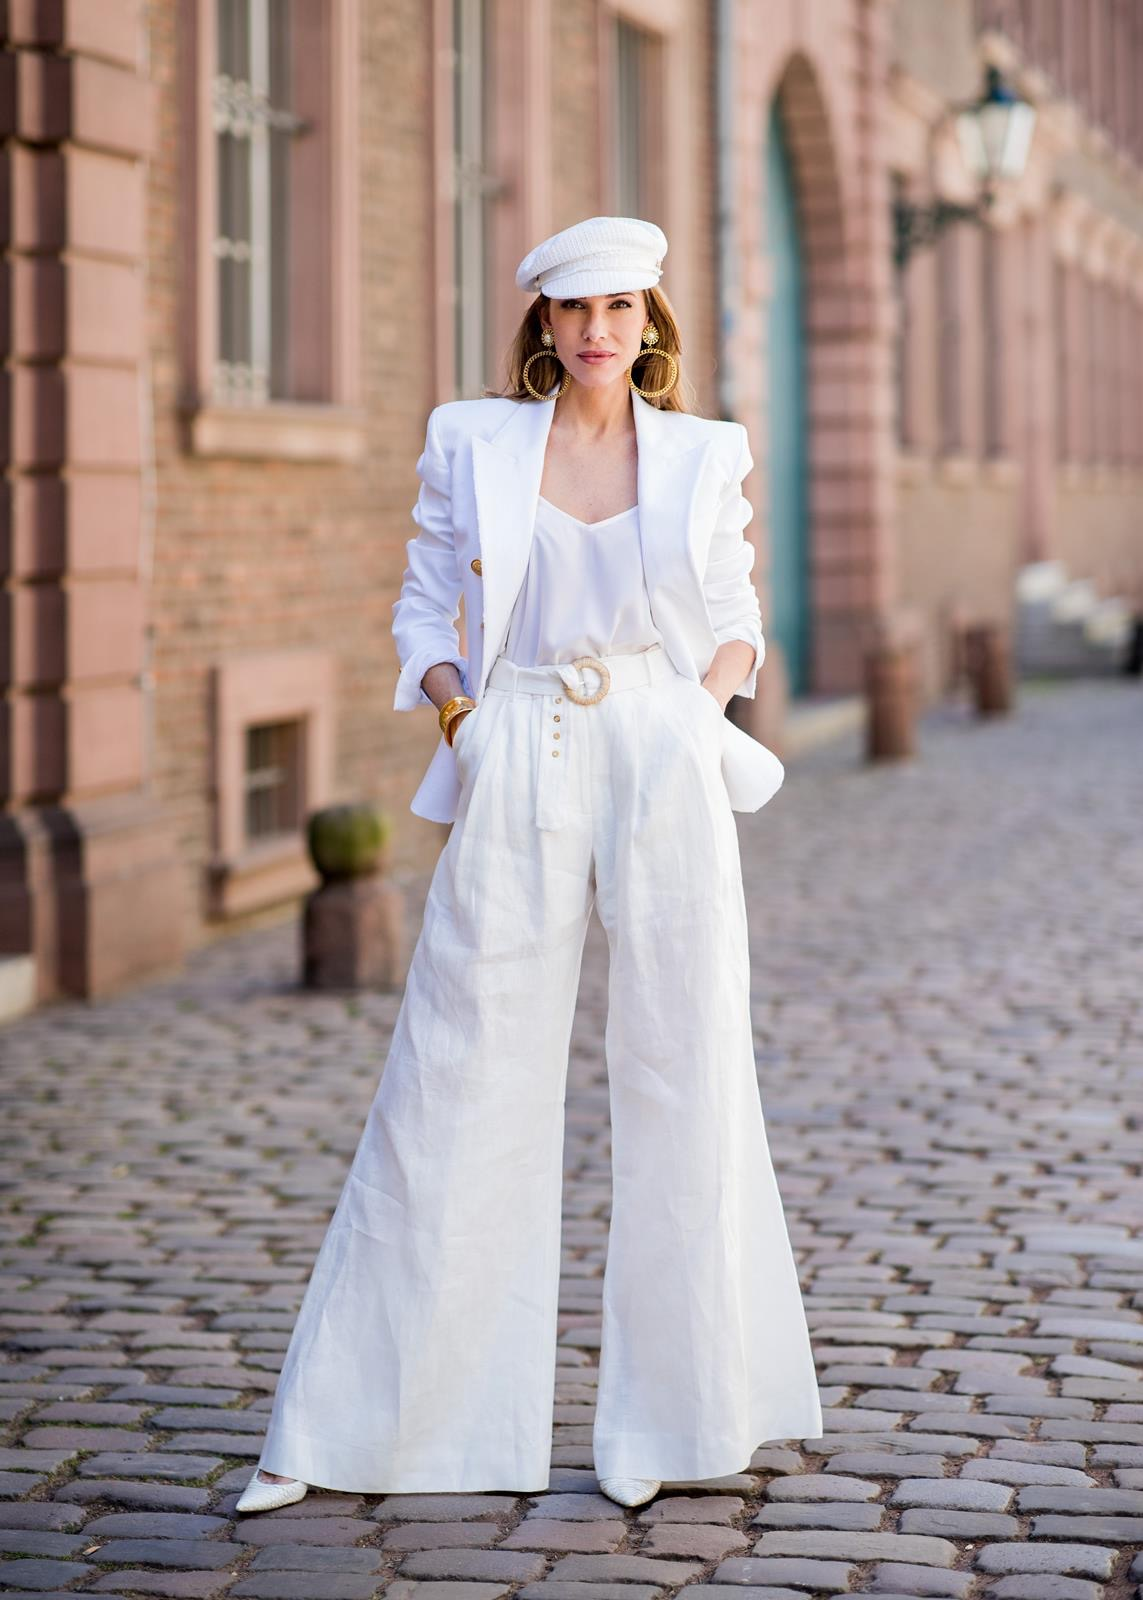 948dce6680d ALL WHITE EVERYTHING - Blog - Alexandra Lapp